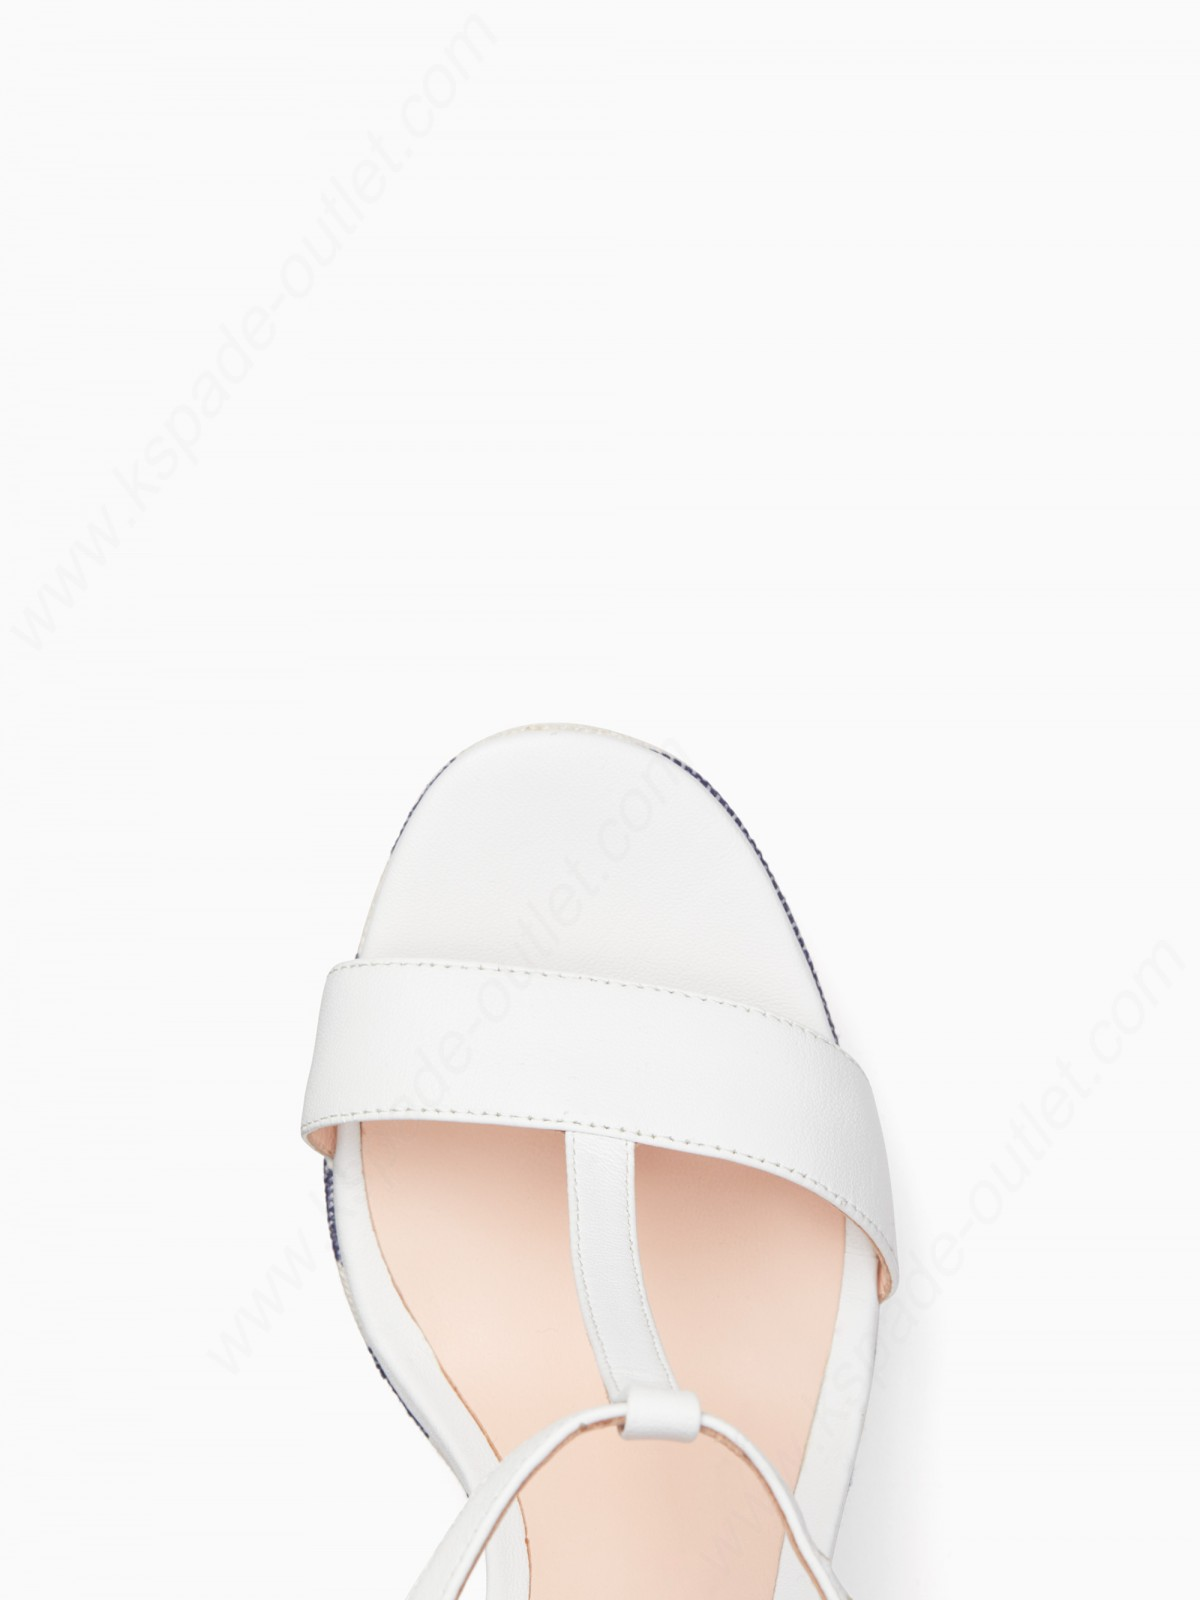 Kate Spade Women Shoes D E A C O N - -2